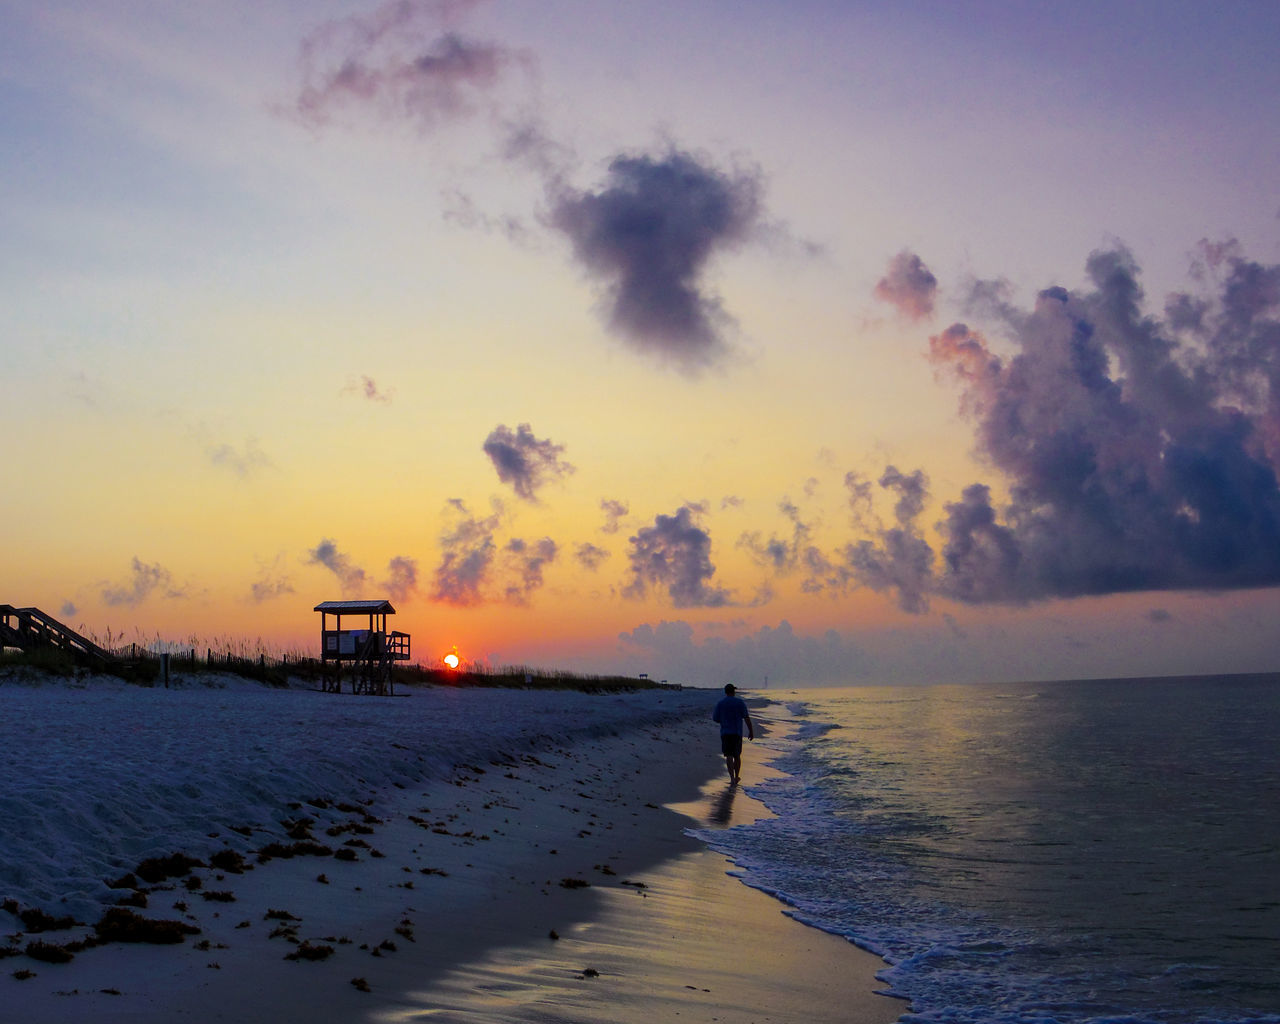 Beach Beauty In Nature Cloud - Sky Cold Temperature Day Full Length Horizon Over Water Nature One Person Outdoors People Sand Scenics Sea Sky Sunrise Sunset Tranquil Scene Walking Alone... Walking Around Walking On The Beach Water